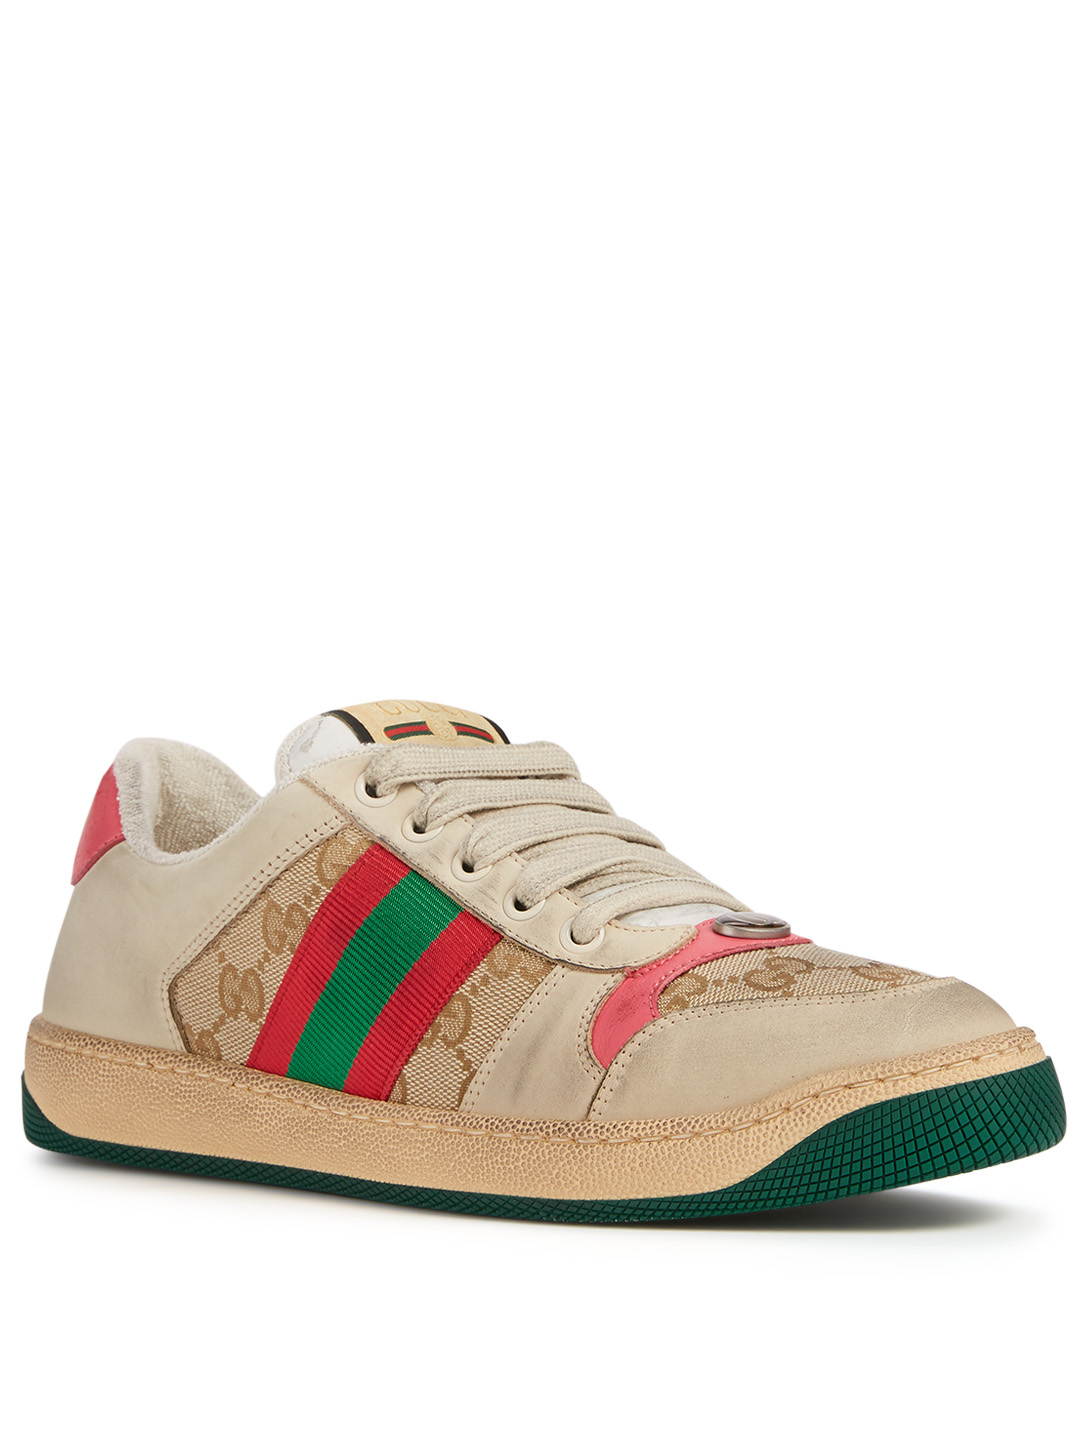 GUCCI Screener GG Canvas And Leather Sneakers Women's Multi